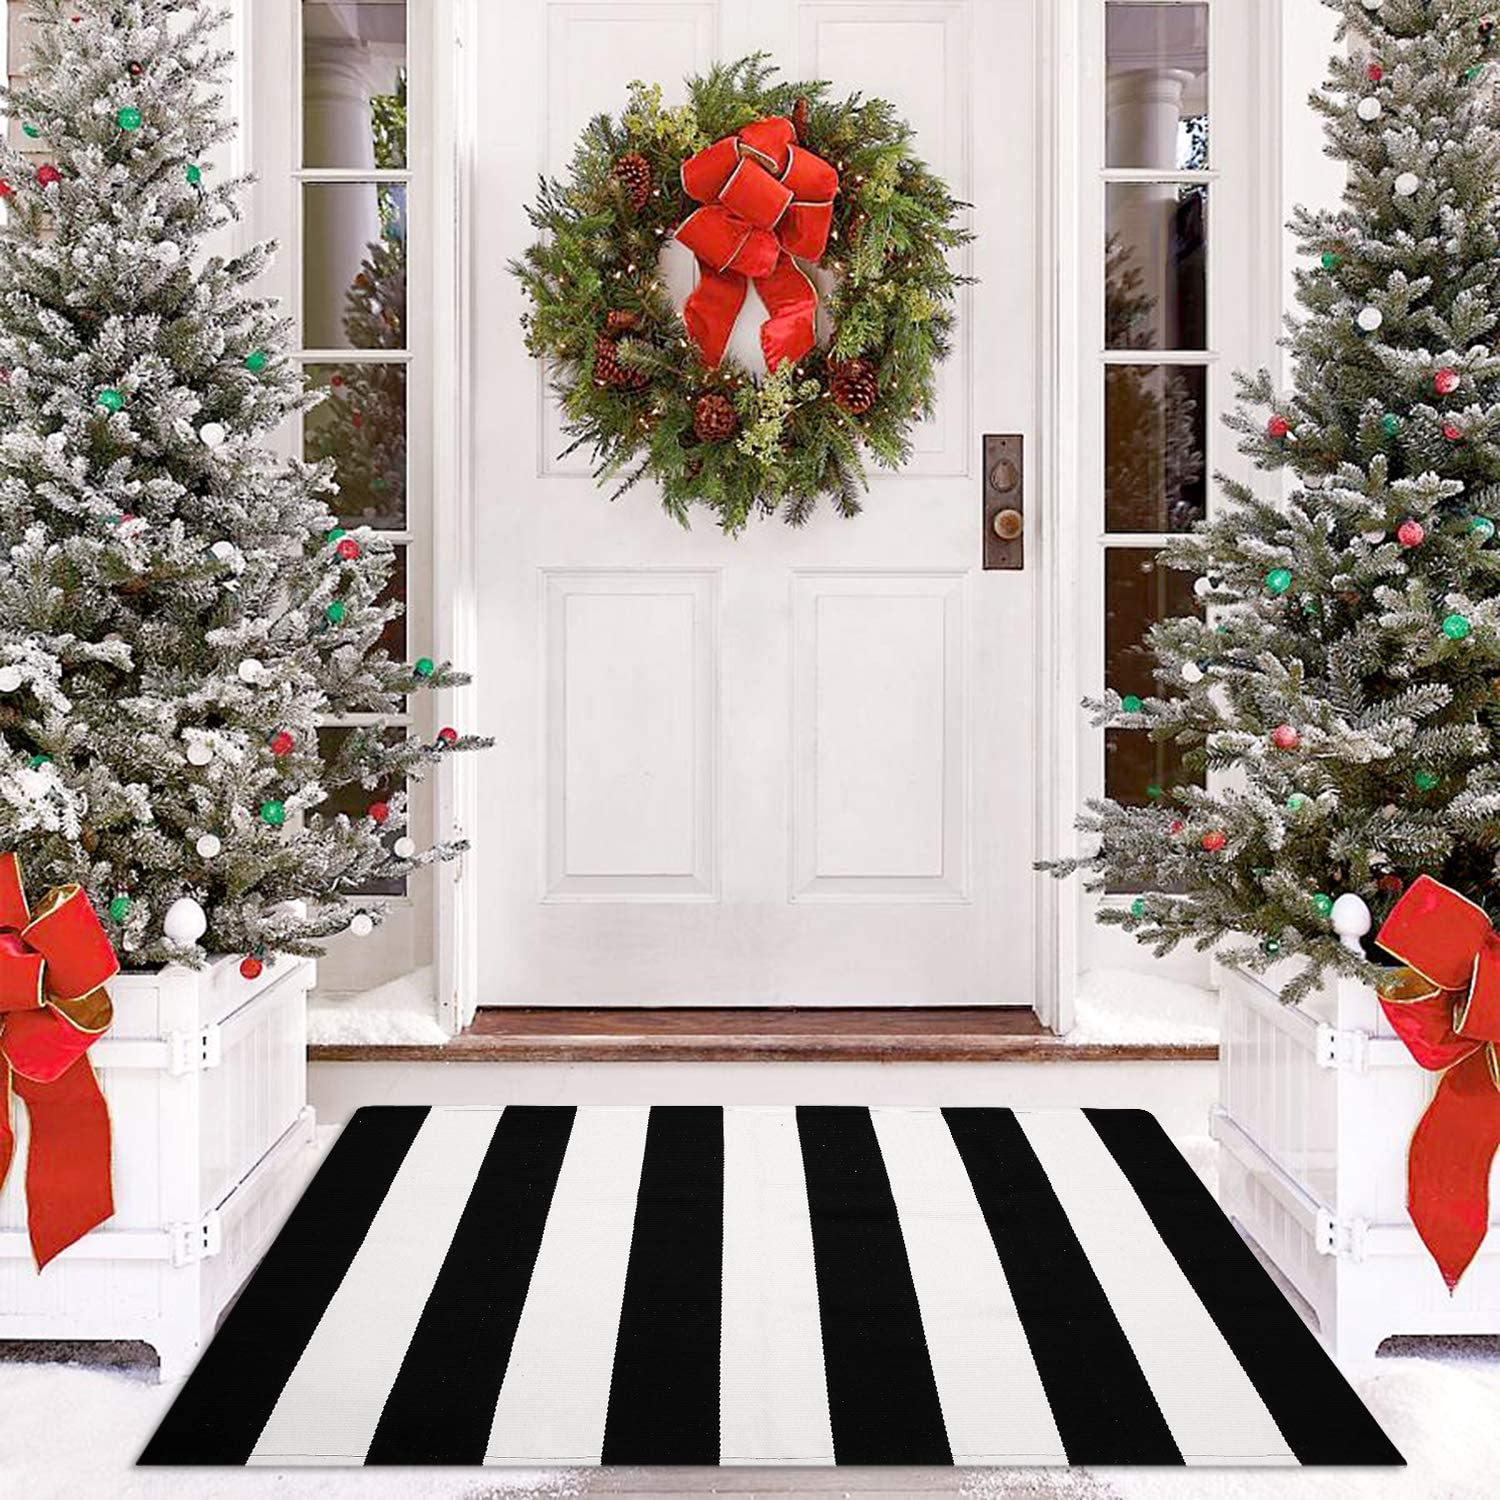 Cotton Black and White Stripe Rug Outdoor Doormat 27.5 x 43 Inches Washable Woven Front Porch Decor Outdoor Indoor Welcome Mats for Front Door/Kitchen/Farmhouse/Entryway/Home Entrance Black Rug